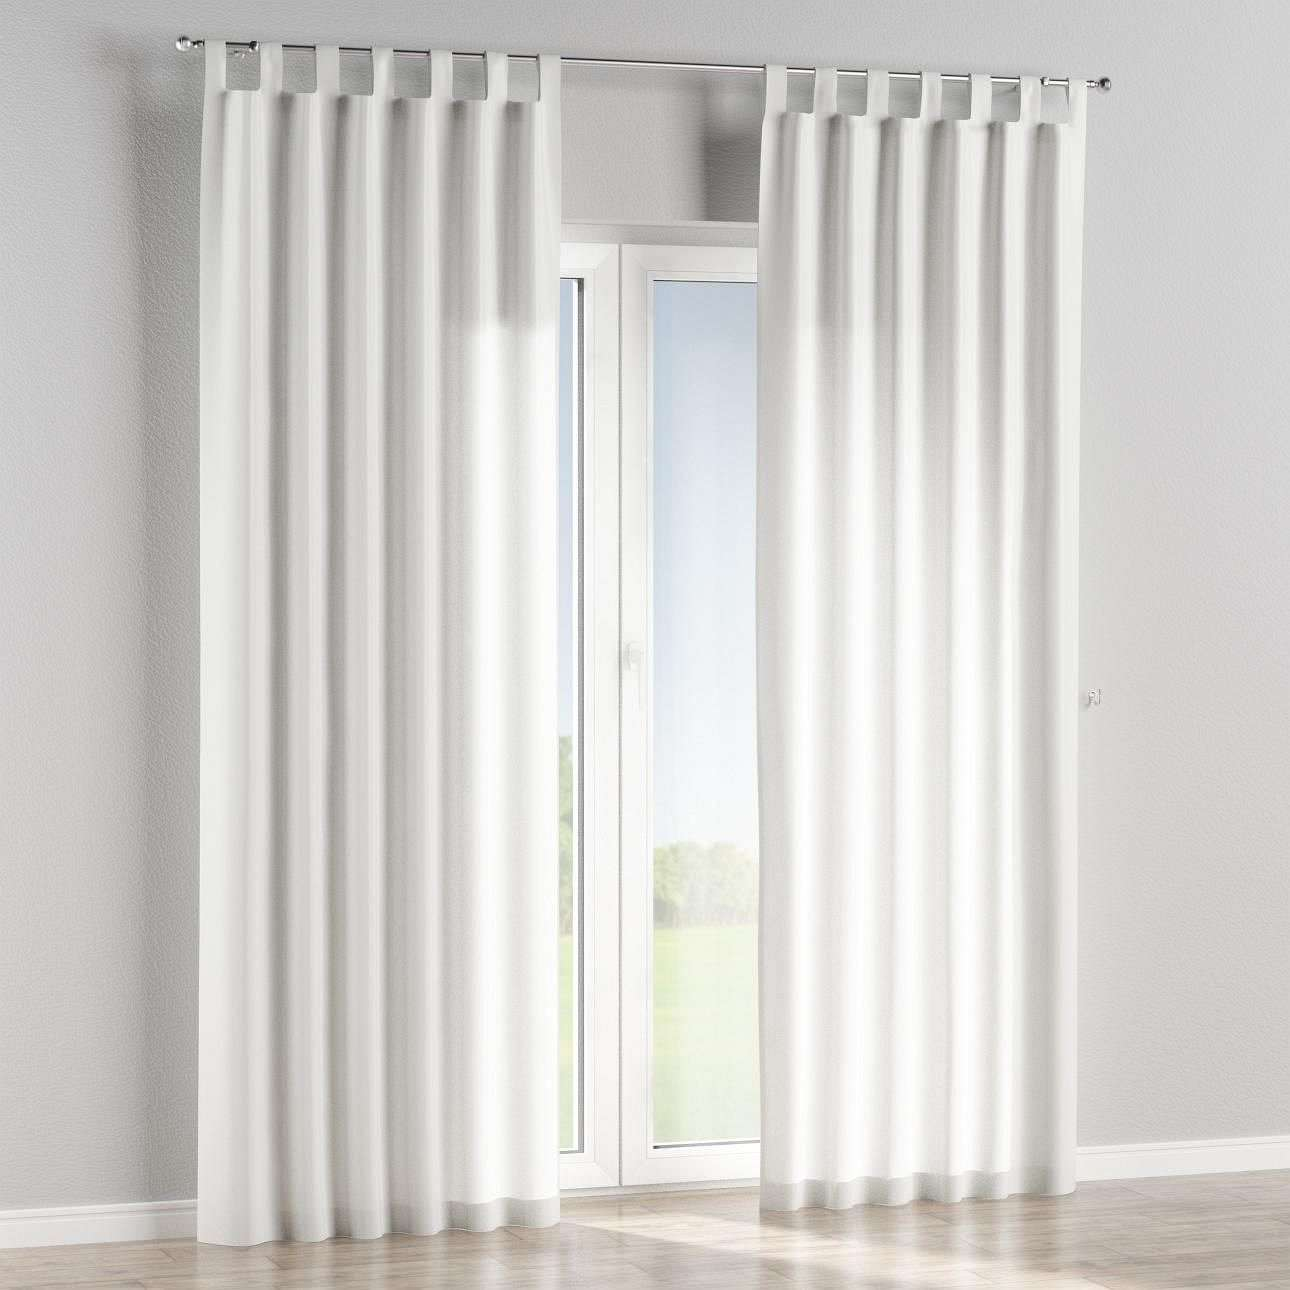 Tab top lined curtains in collection Cardiff, fabric: 136-26